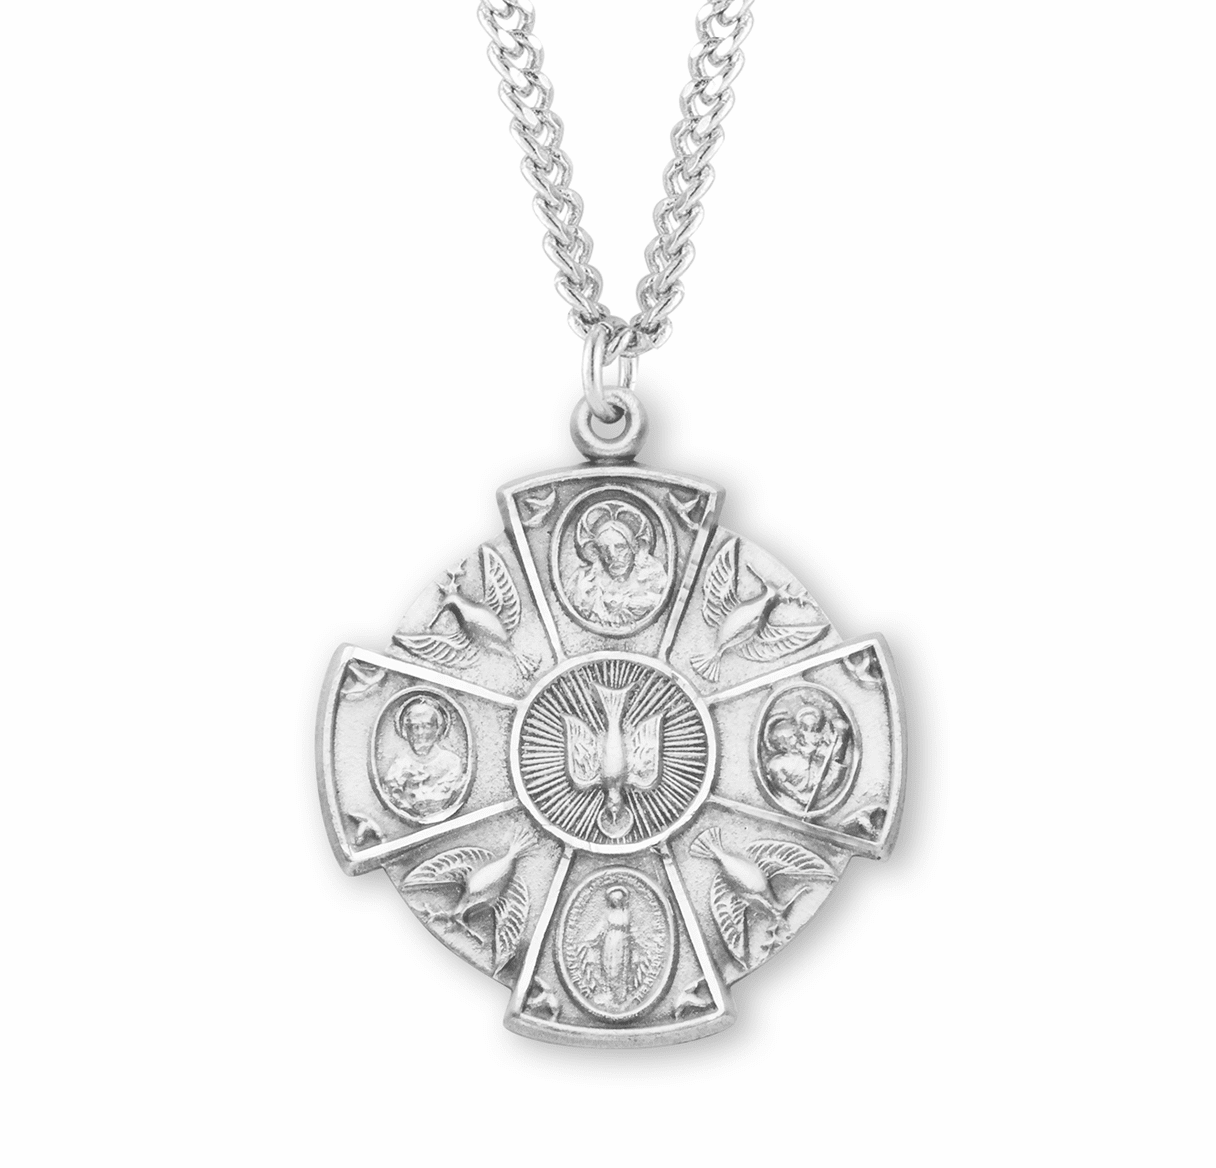 Round 4-Way Sterling Silver Cross w/Doves Medal Necklace by HMH Religious